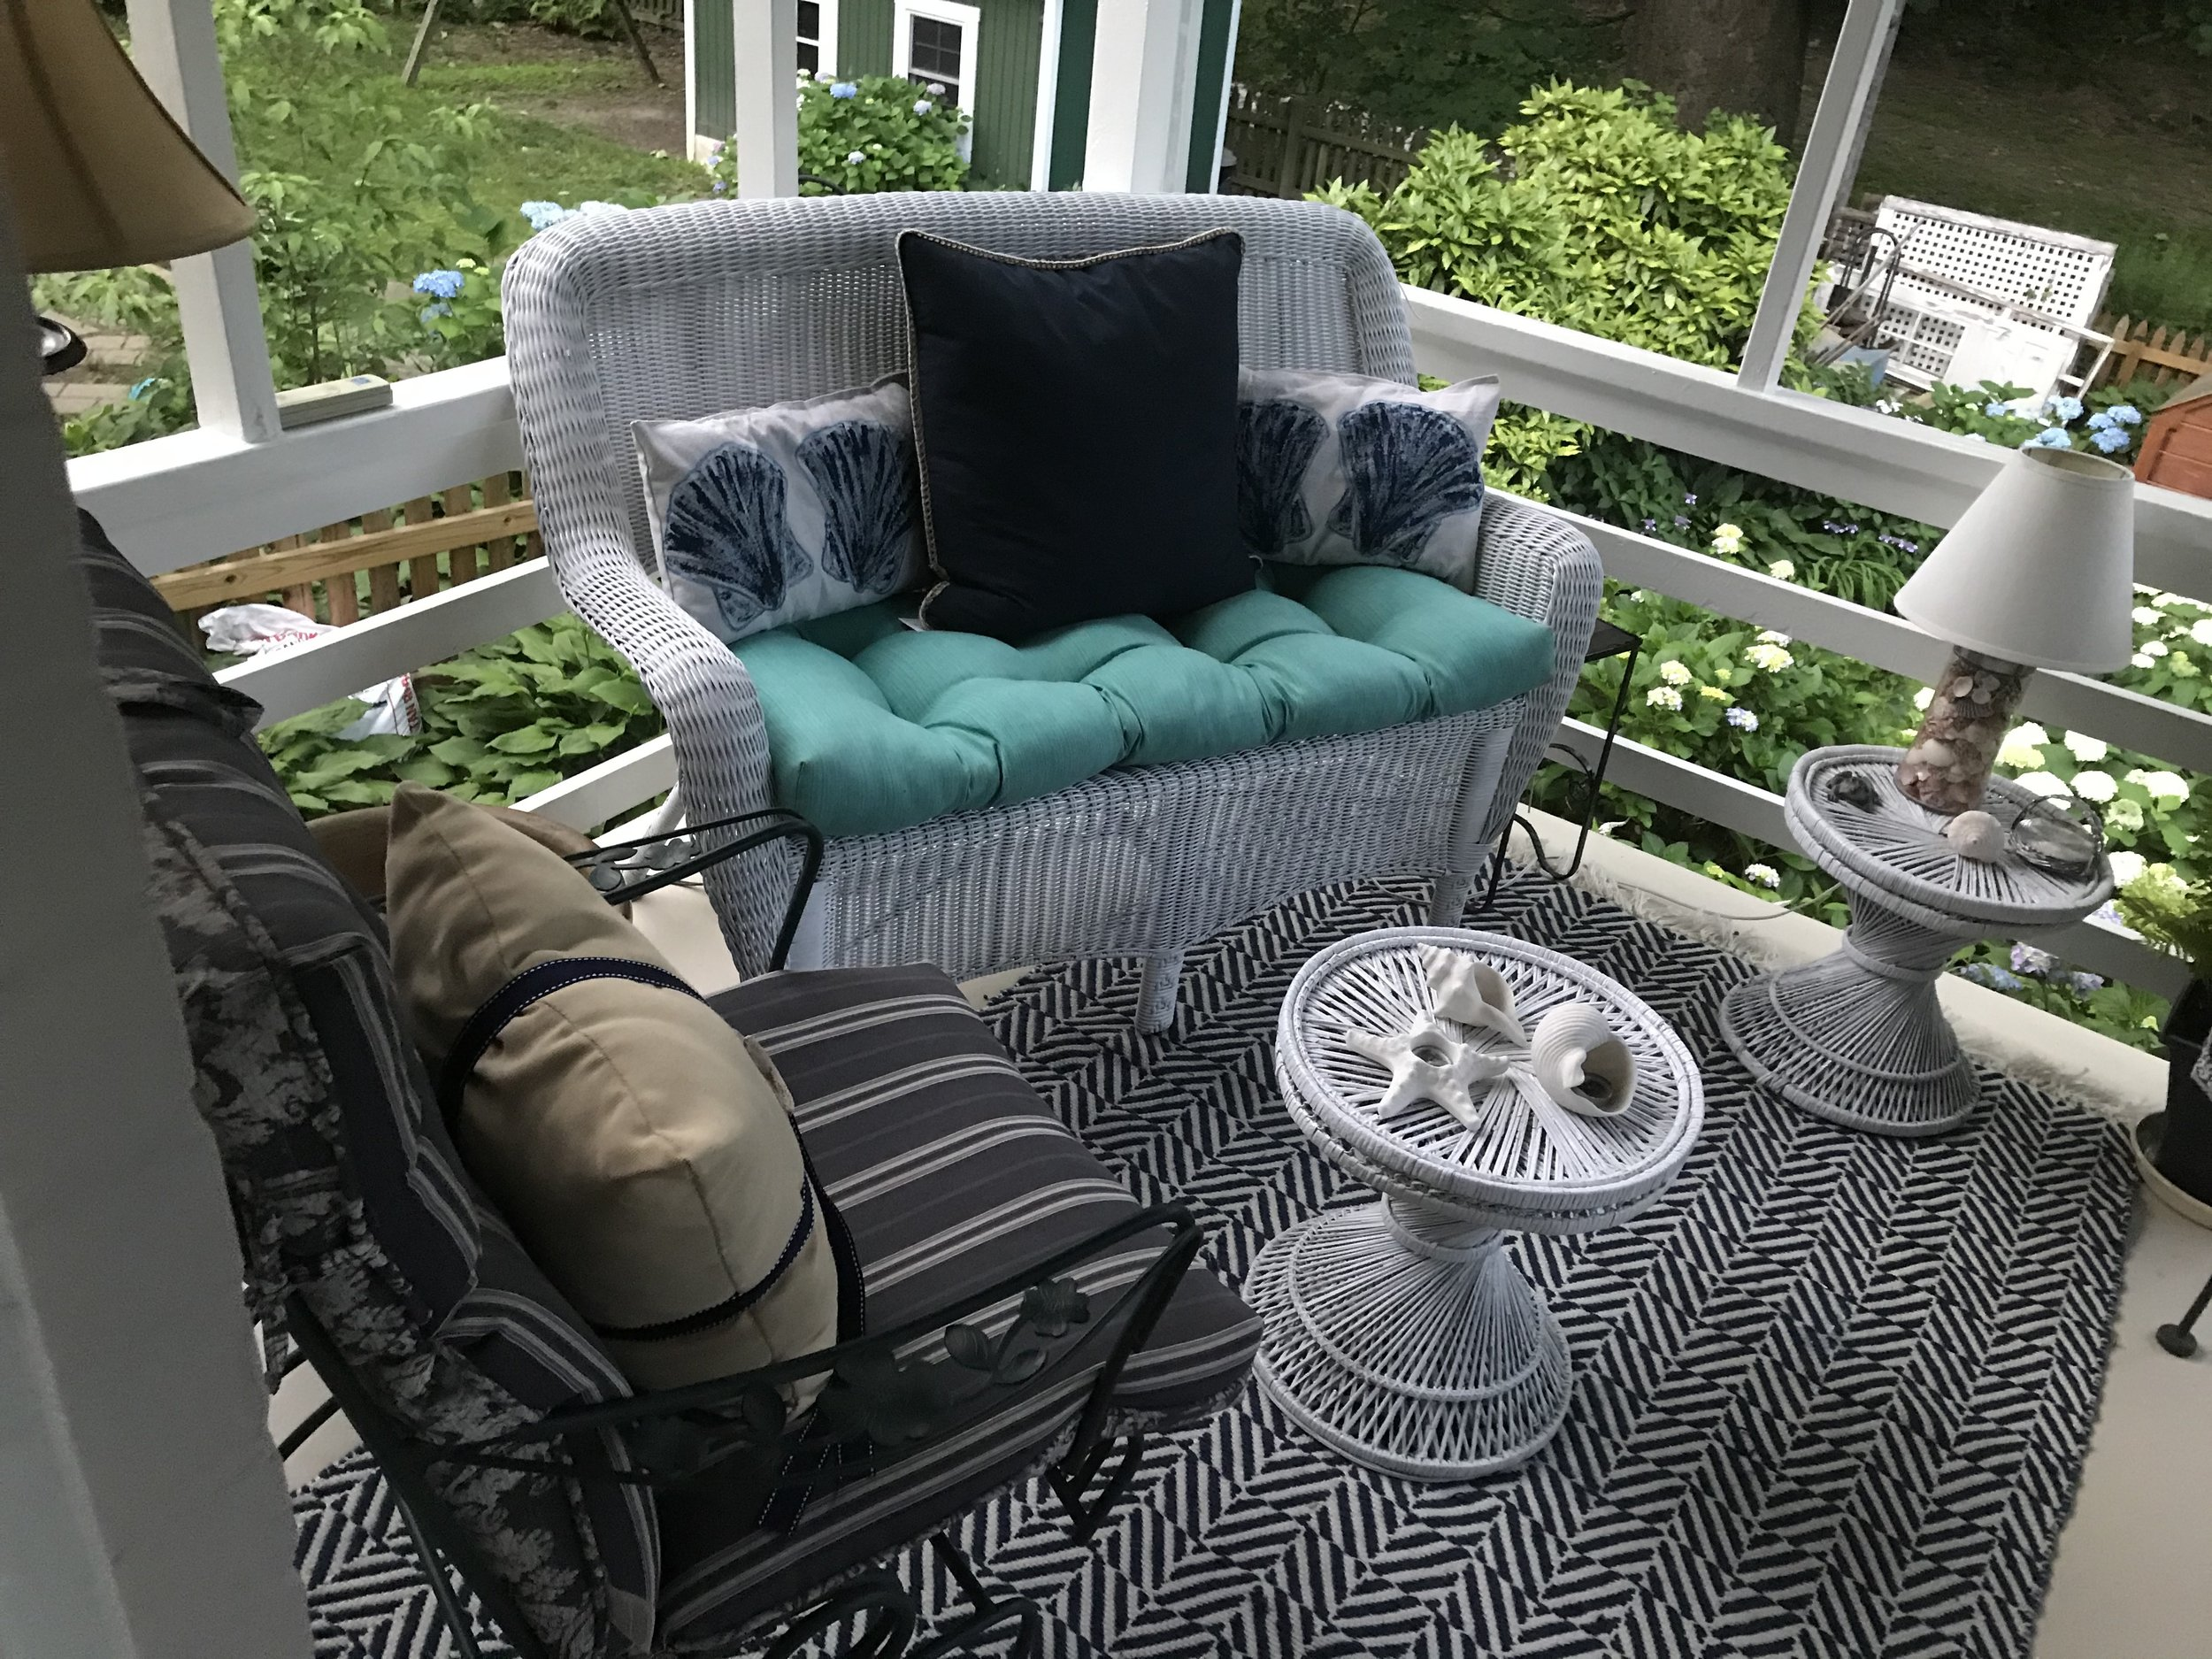 Our screened porch (sans screening-a summer project in the wings) with my hand painted scallop pillows.